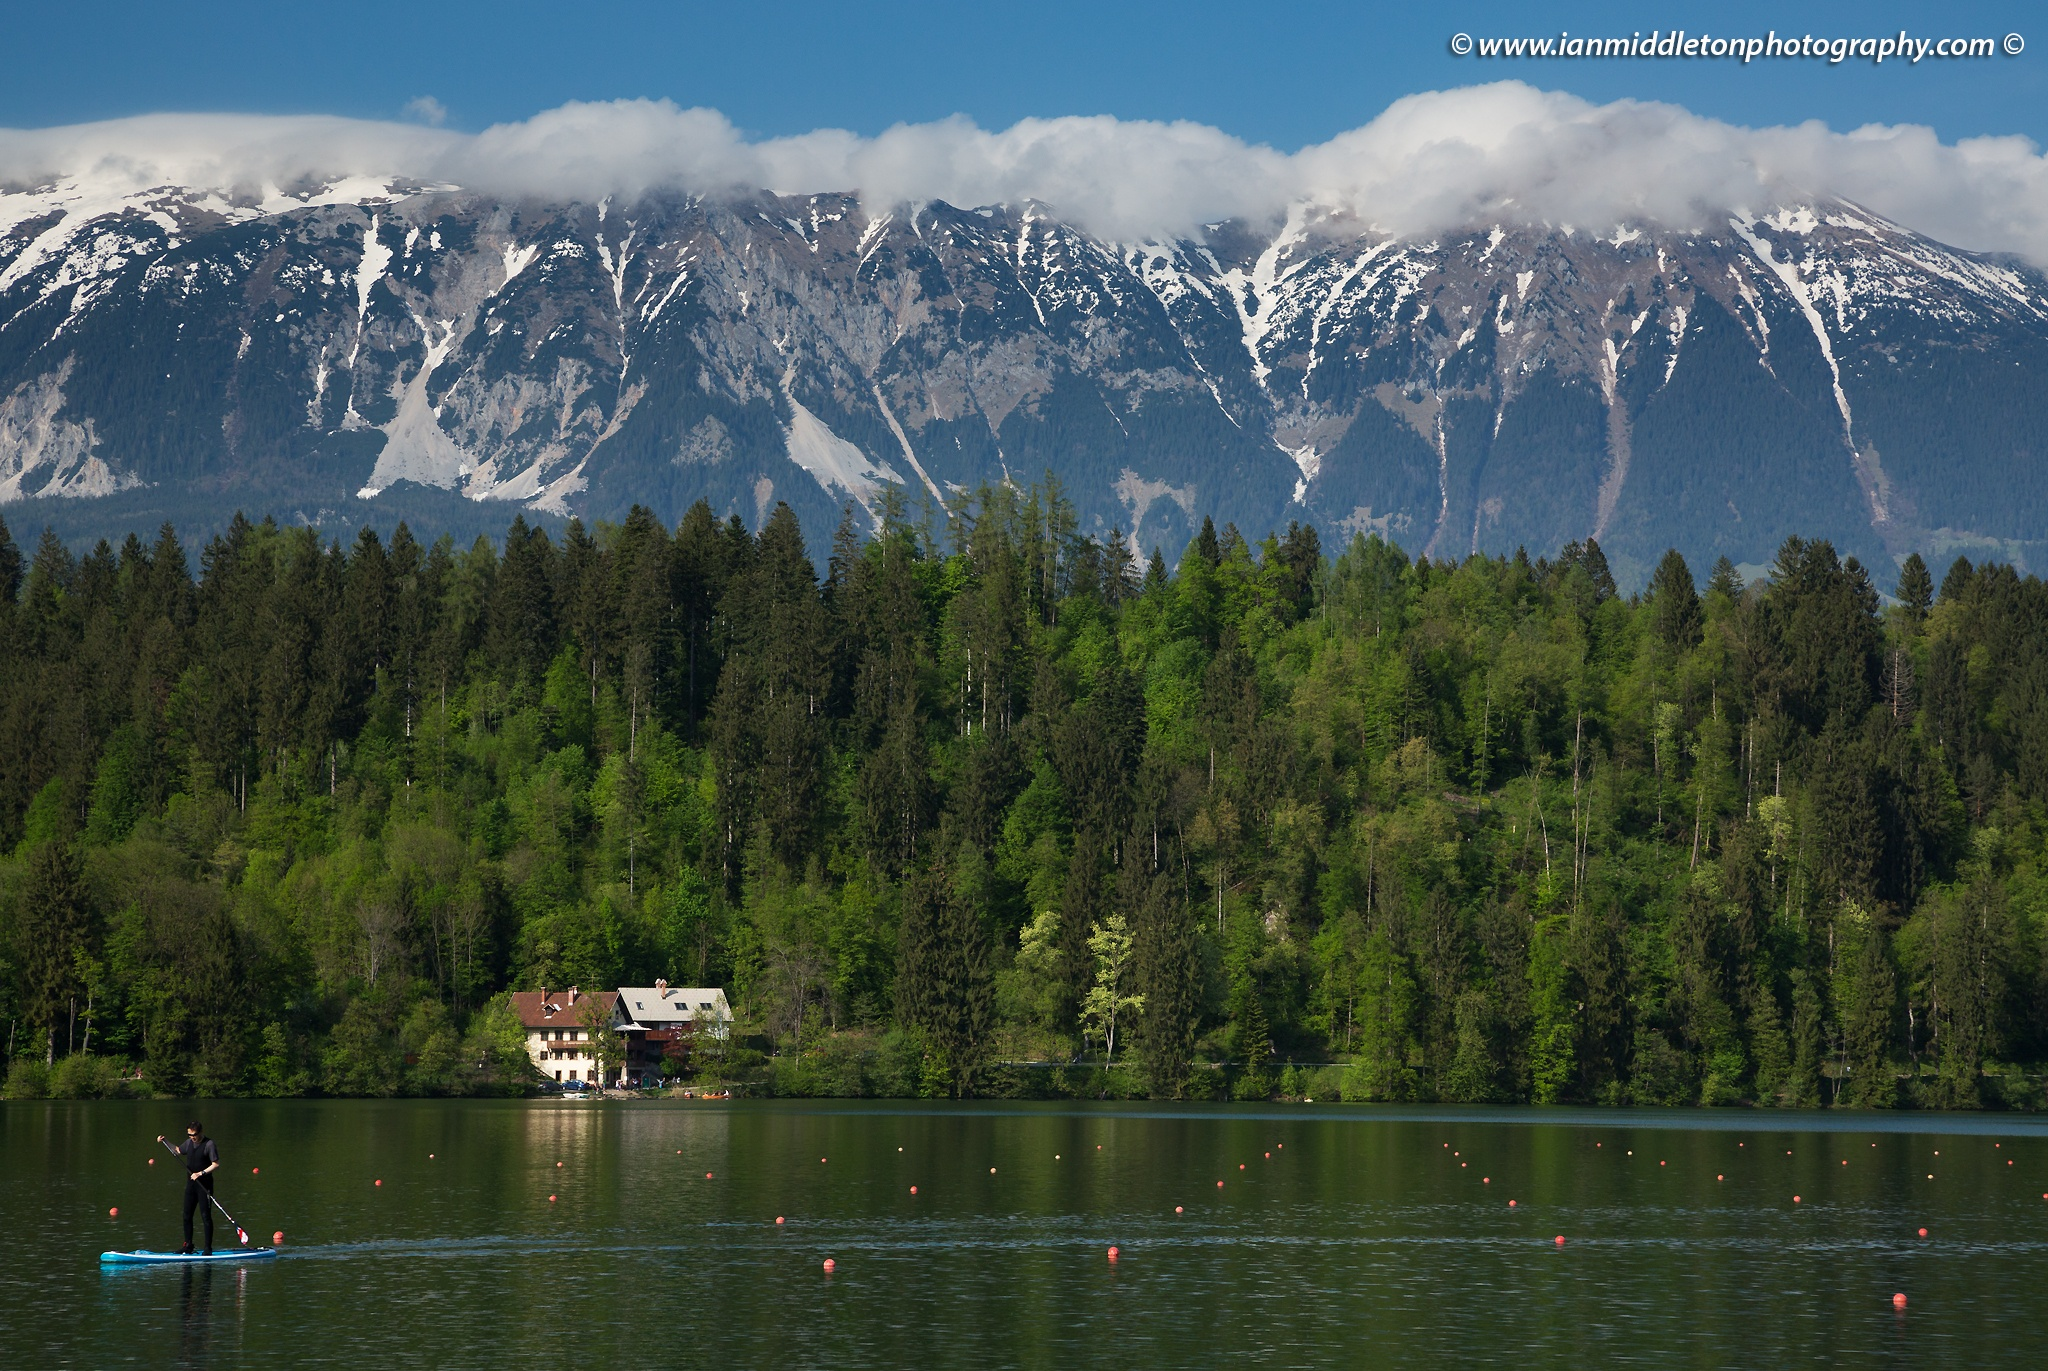 Man standup paddleboarding (SUP) on Lake Bled, Slovenia with the Karavanke Mountains in the background.